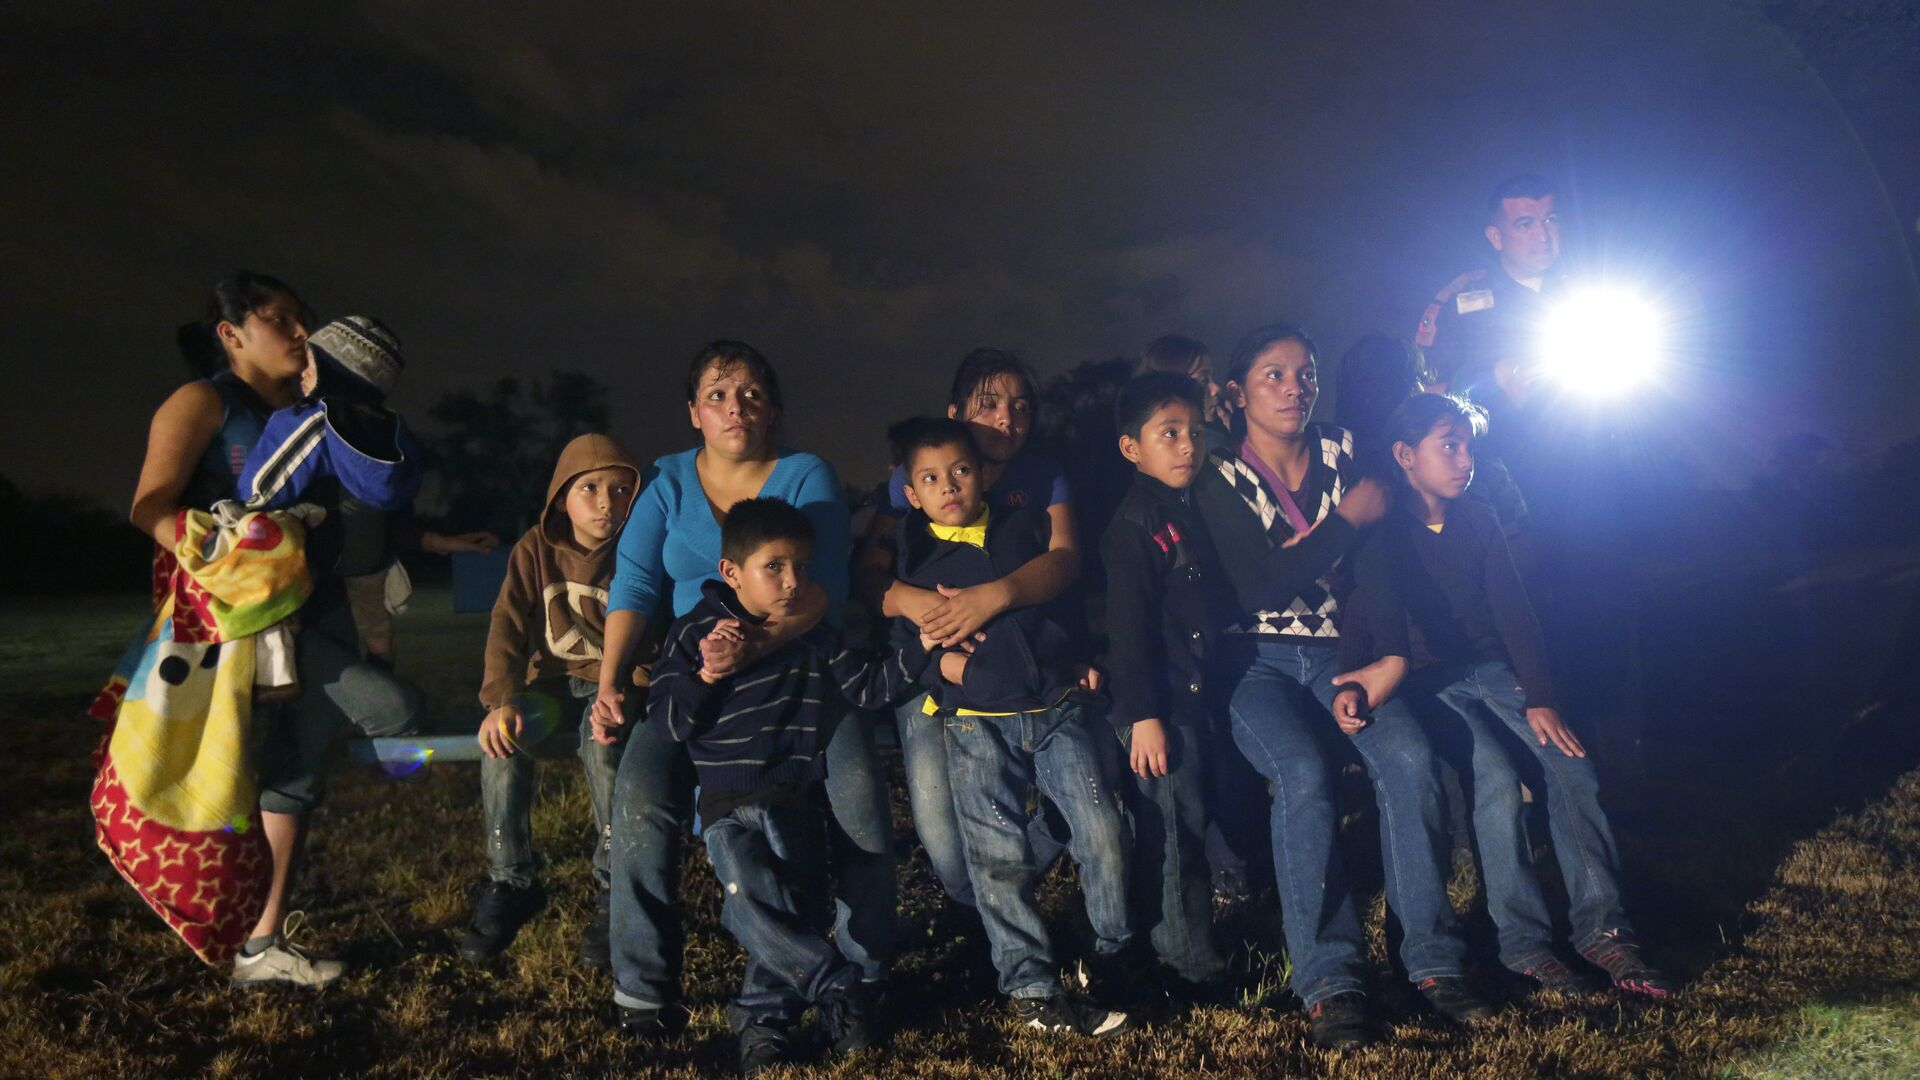 A group of young migrants from Honduras and El Salvador who crossed the U.S.-Mexico border illegally as they are stopped in Granjeno, Texas - Sputnik Mundo, 1920, 15.05.2018